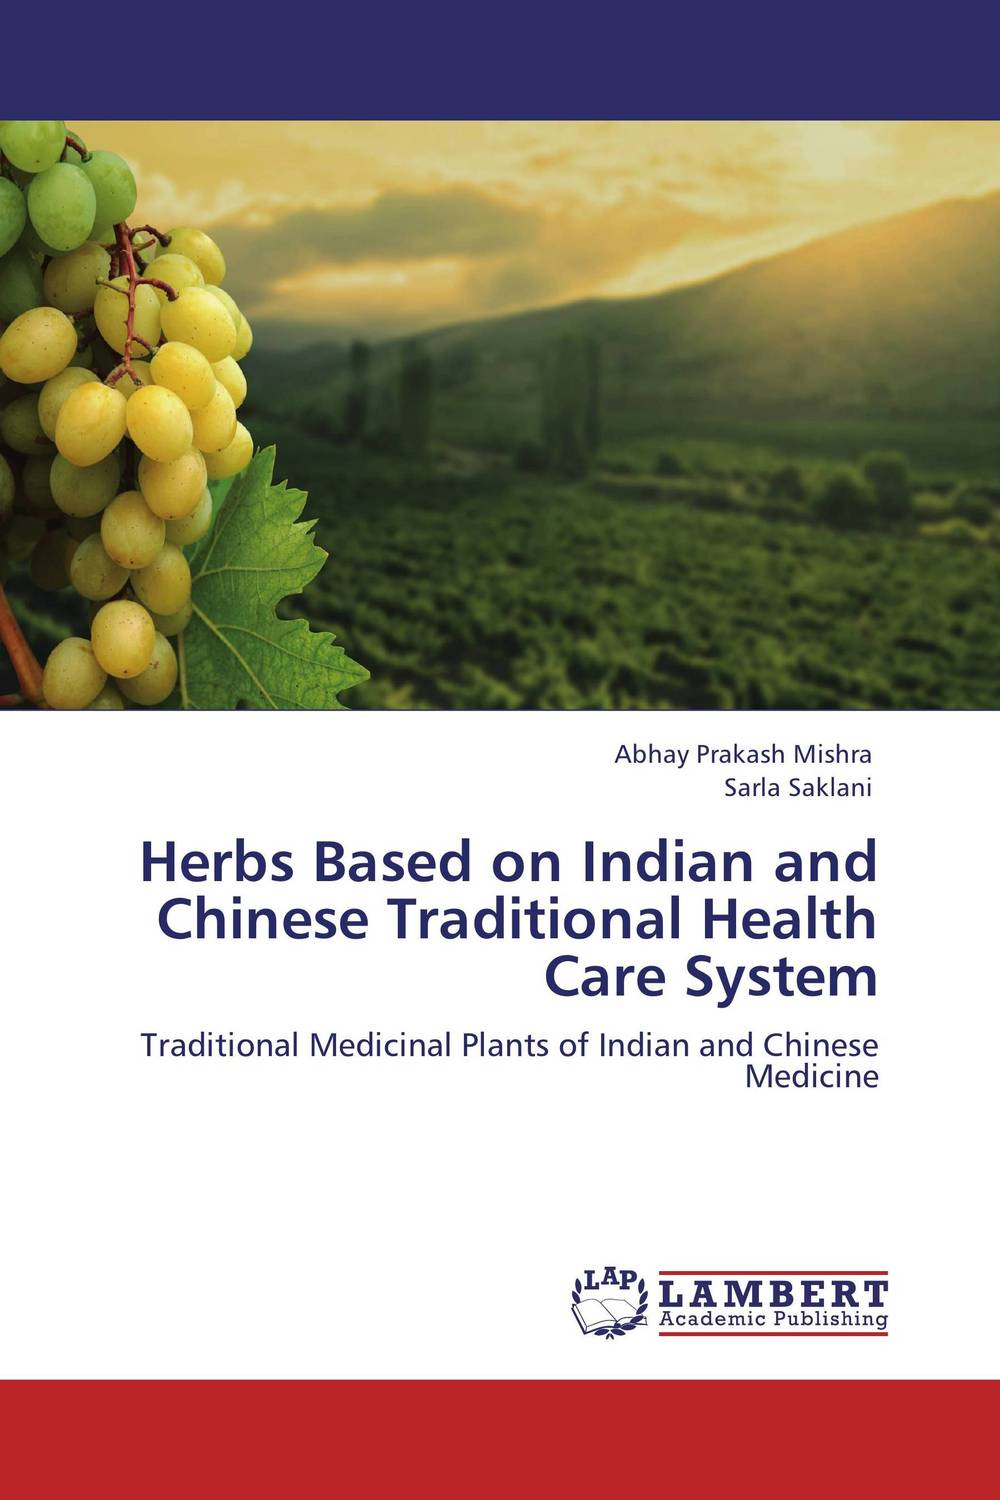 Herbs Based on Indian and Chinese Traditional Health Care System globo потолочный светильник tornado 40463 3